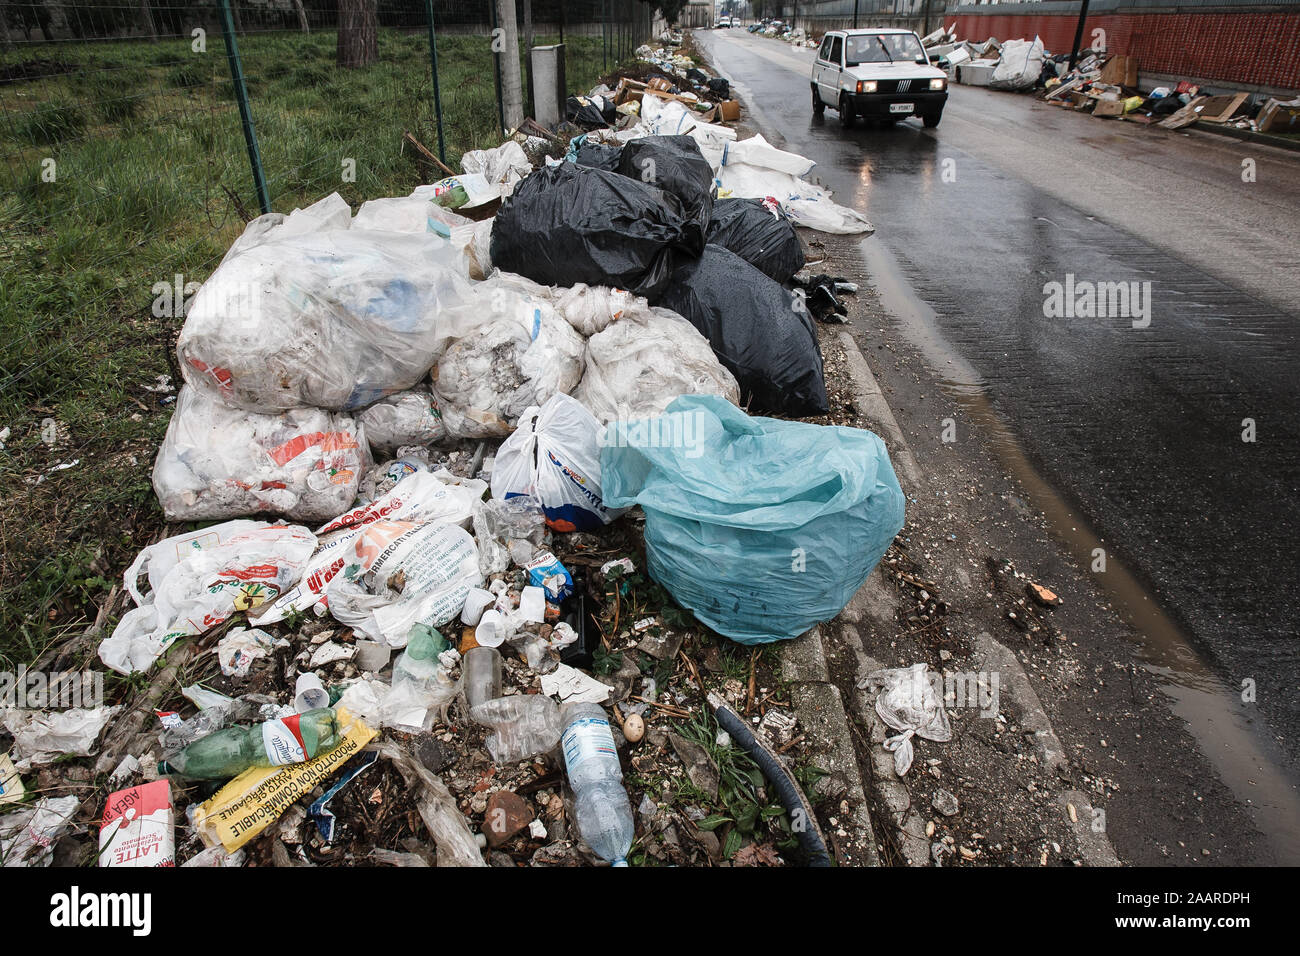 Caserta, Italy, February 21, 2008: Waste accumulates on a street in Caserta, Italy, north of Naples during the Naples waste management crisis in 2008. Stock Photo